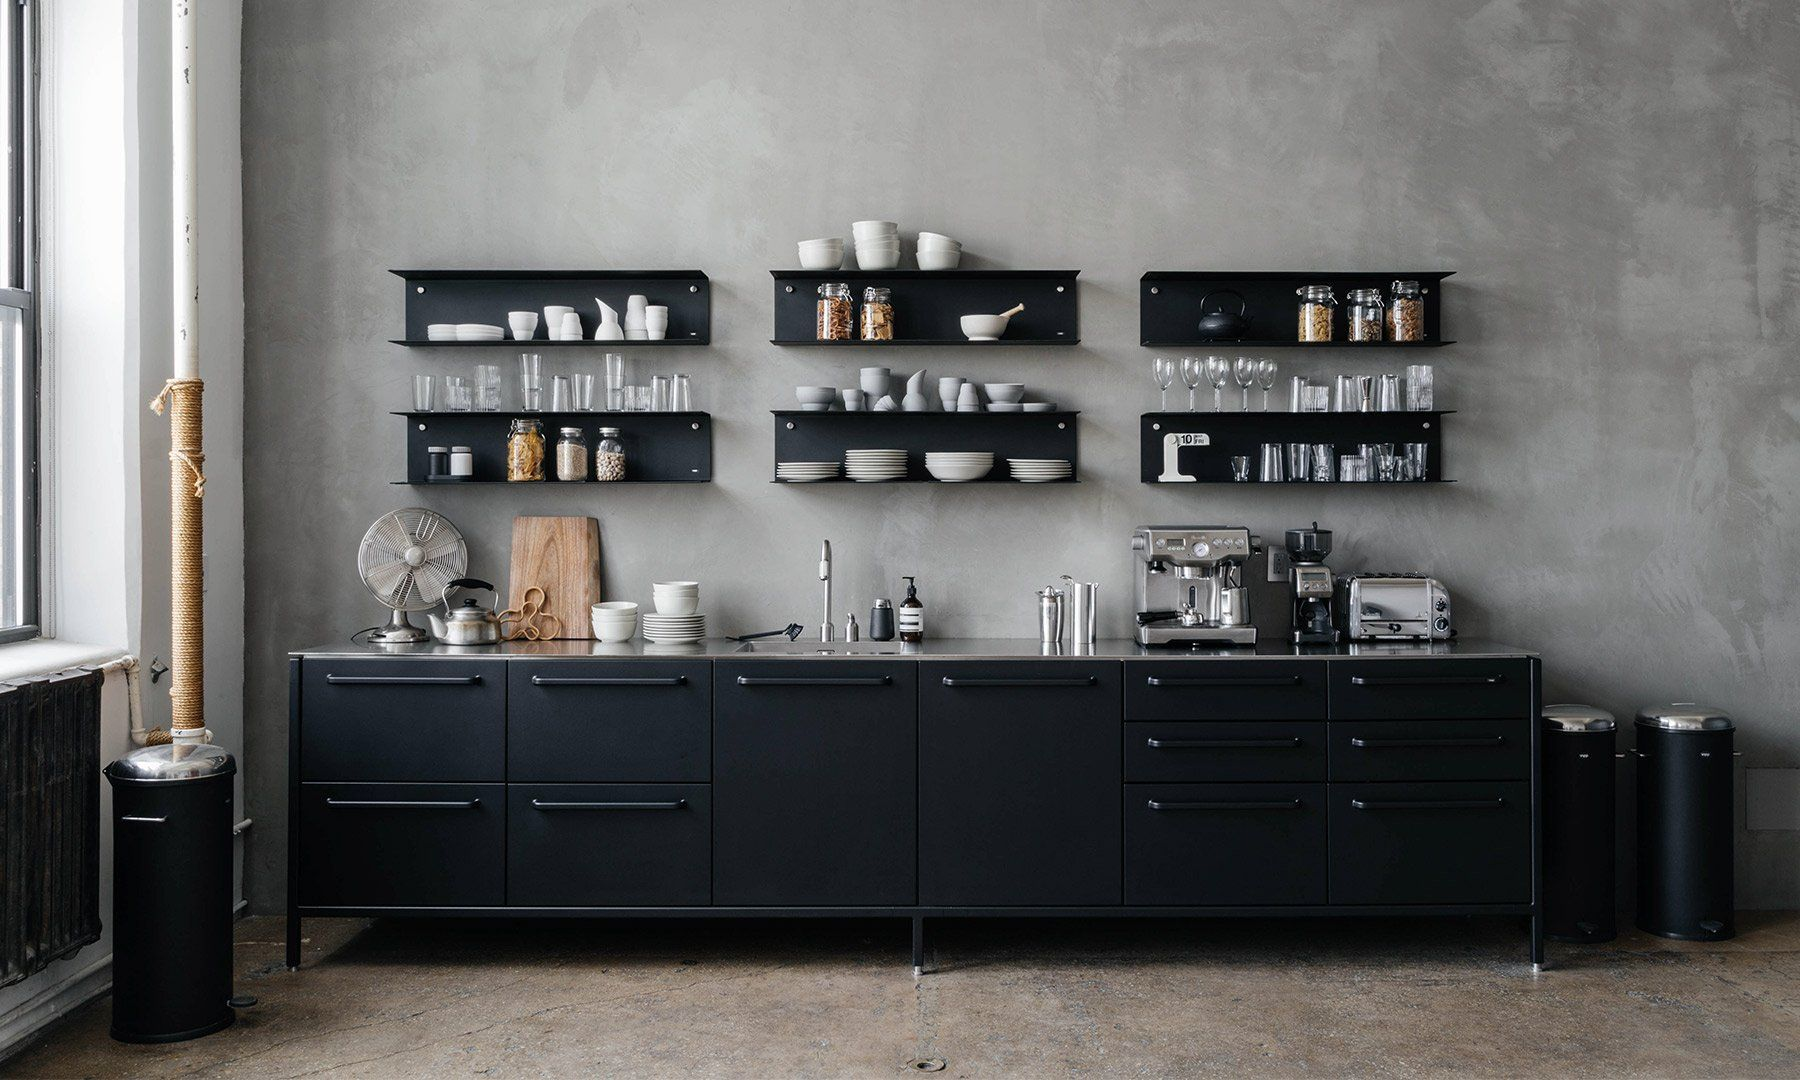 The Latest Furniture Item From Vipp Combines Powder Coated Steel Industrially Tooled And Refine Kitchen Design Companies Home Kitchens Kitchen Cabinet Remodel